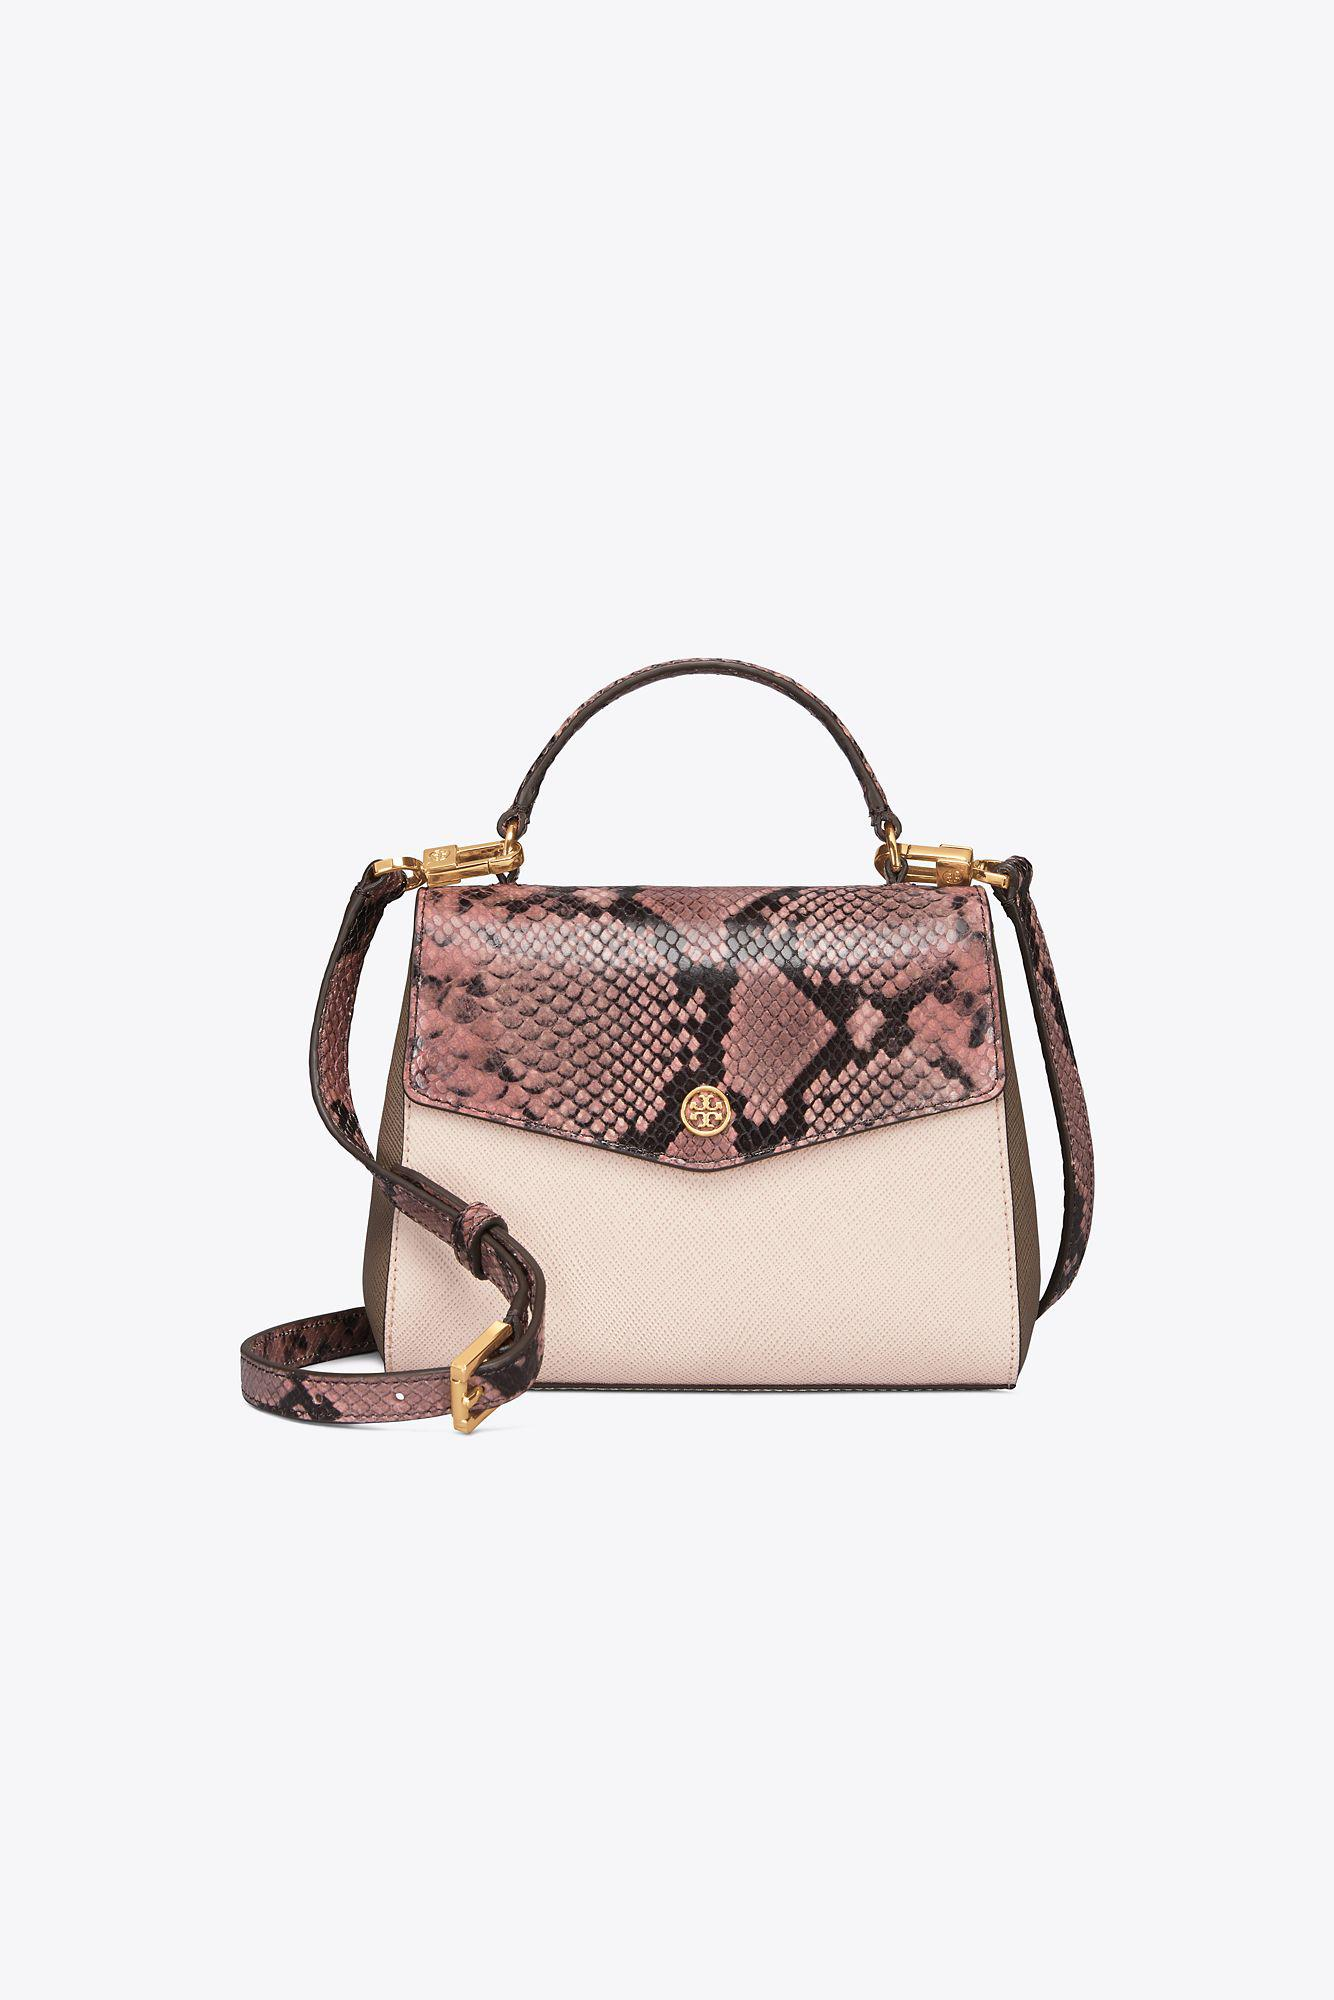 d26f85a289932 Tory Burch Robinson Mixed-materials Top-handle Satchel in Pink - Lyst